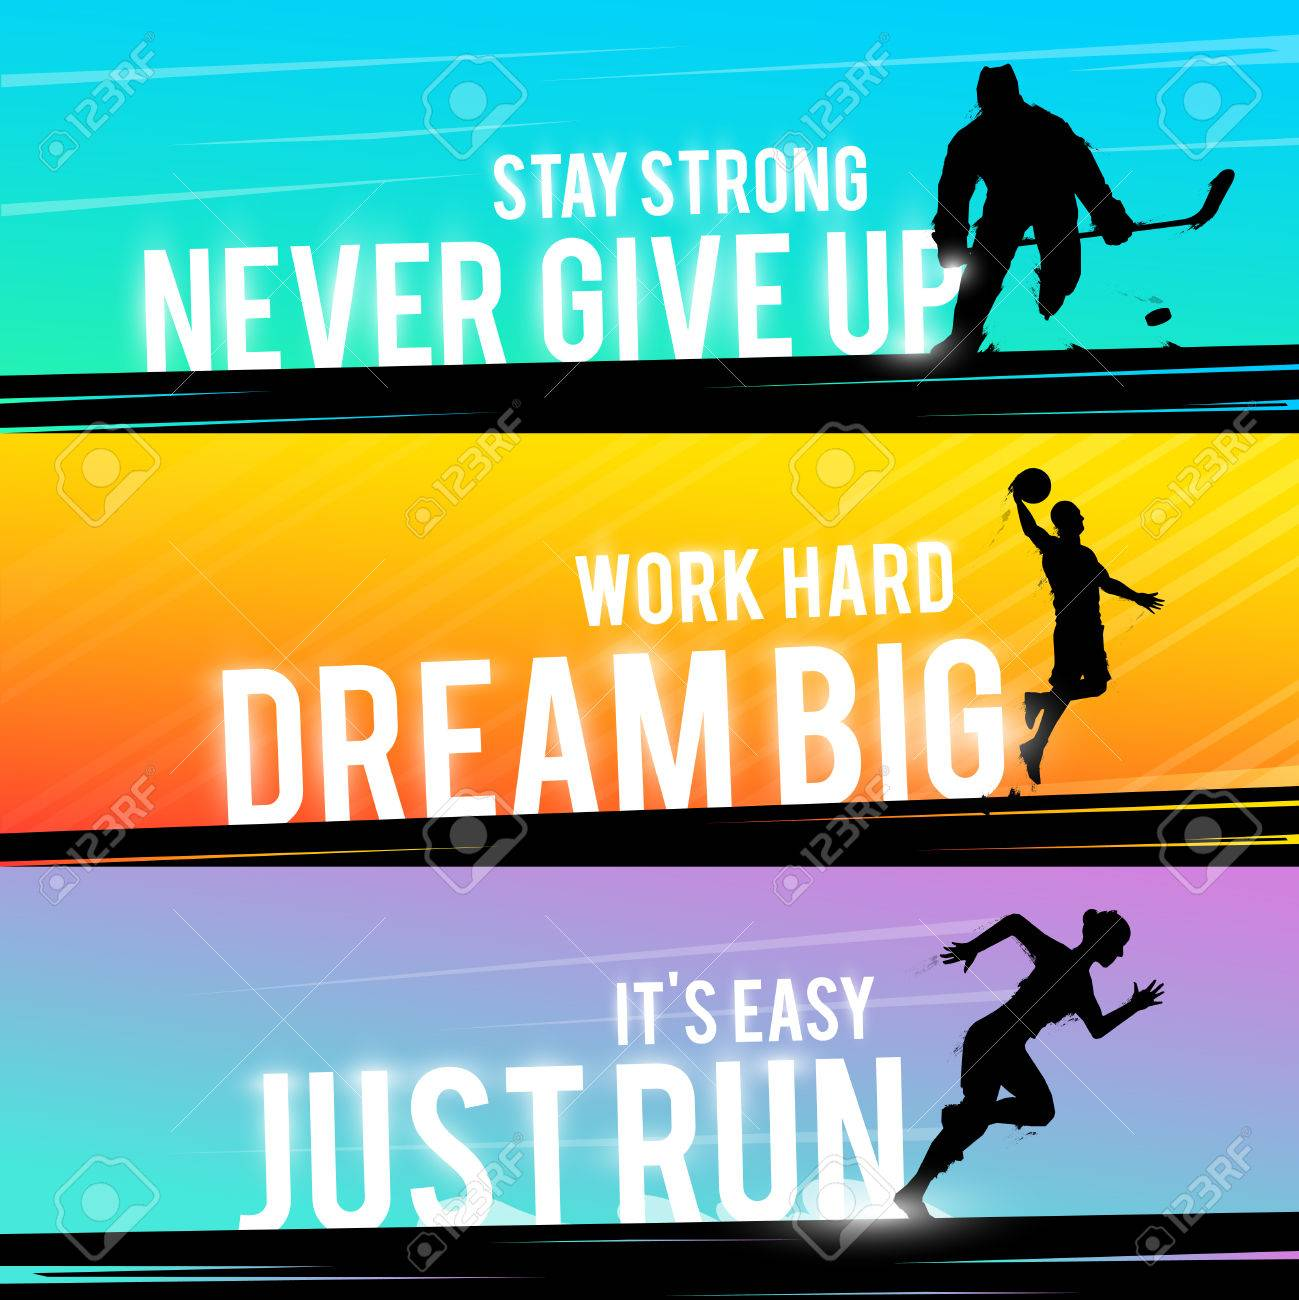 Vector Sports Web Banner Motivational Concept The Silhouette